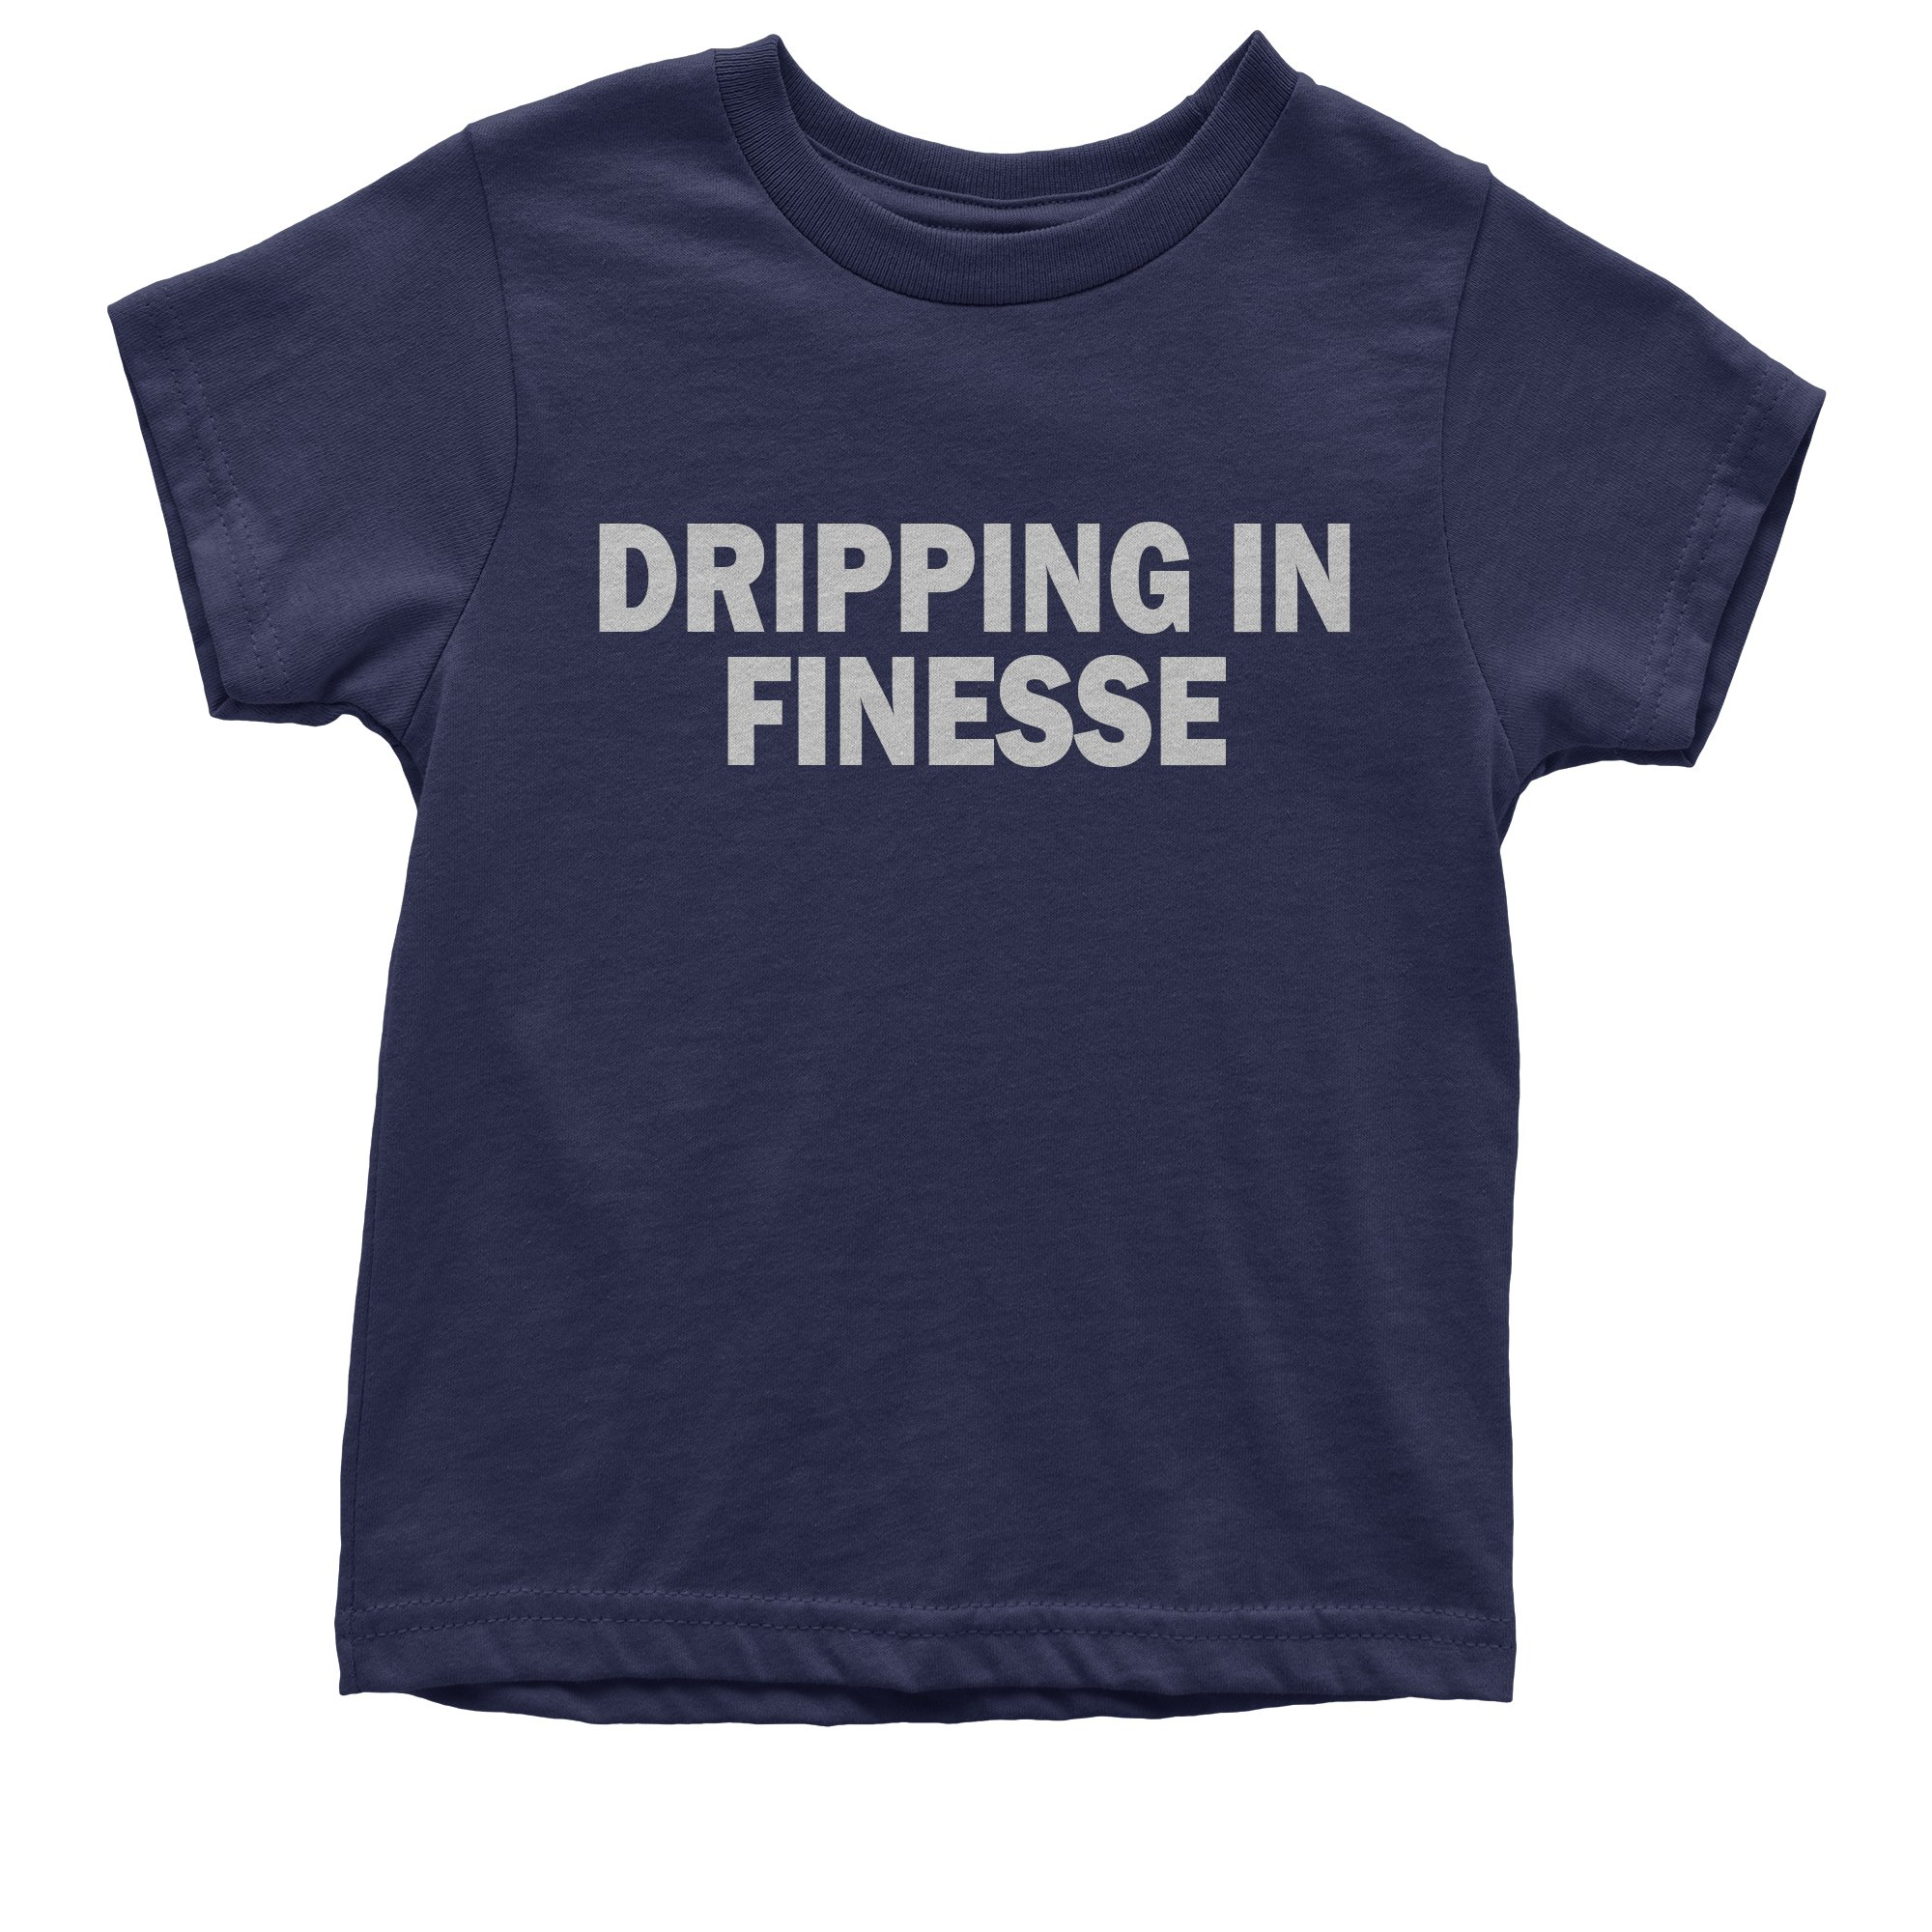 Dripping In Finesse T Shirt 1388